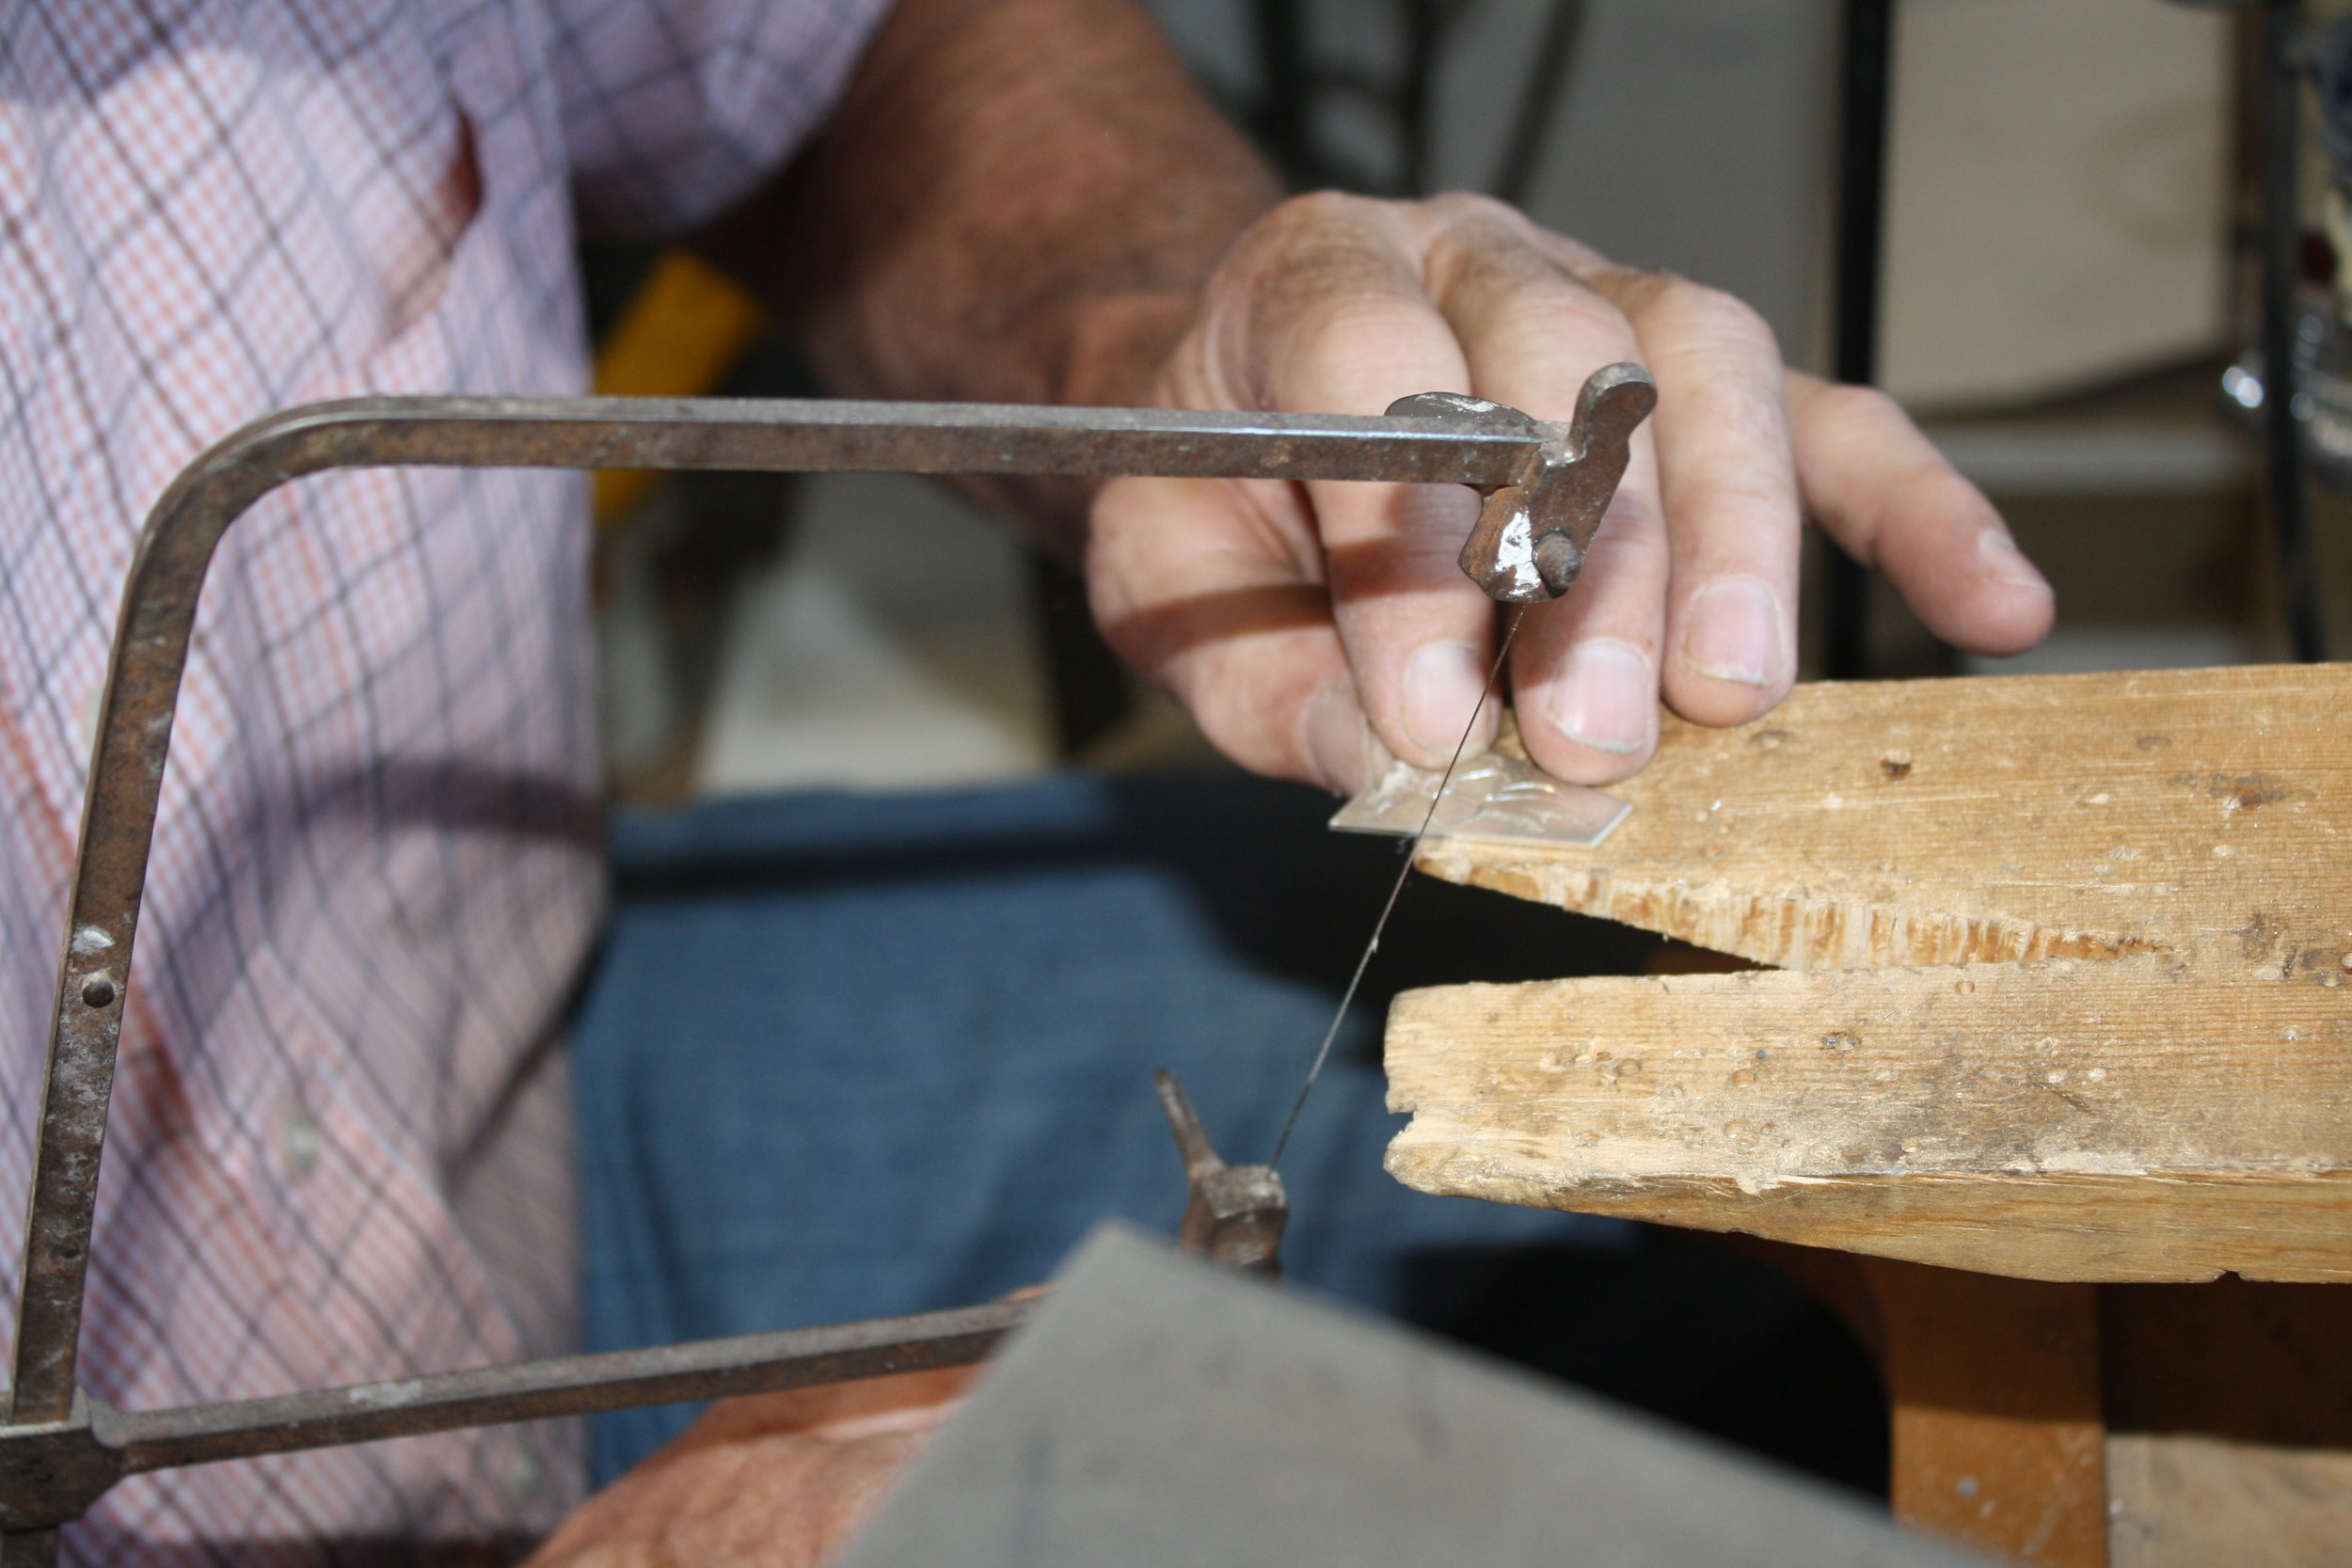 Jock Brown cuts a floral design from a sheet of silver using a jeweler's saw.